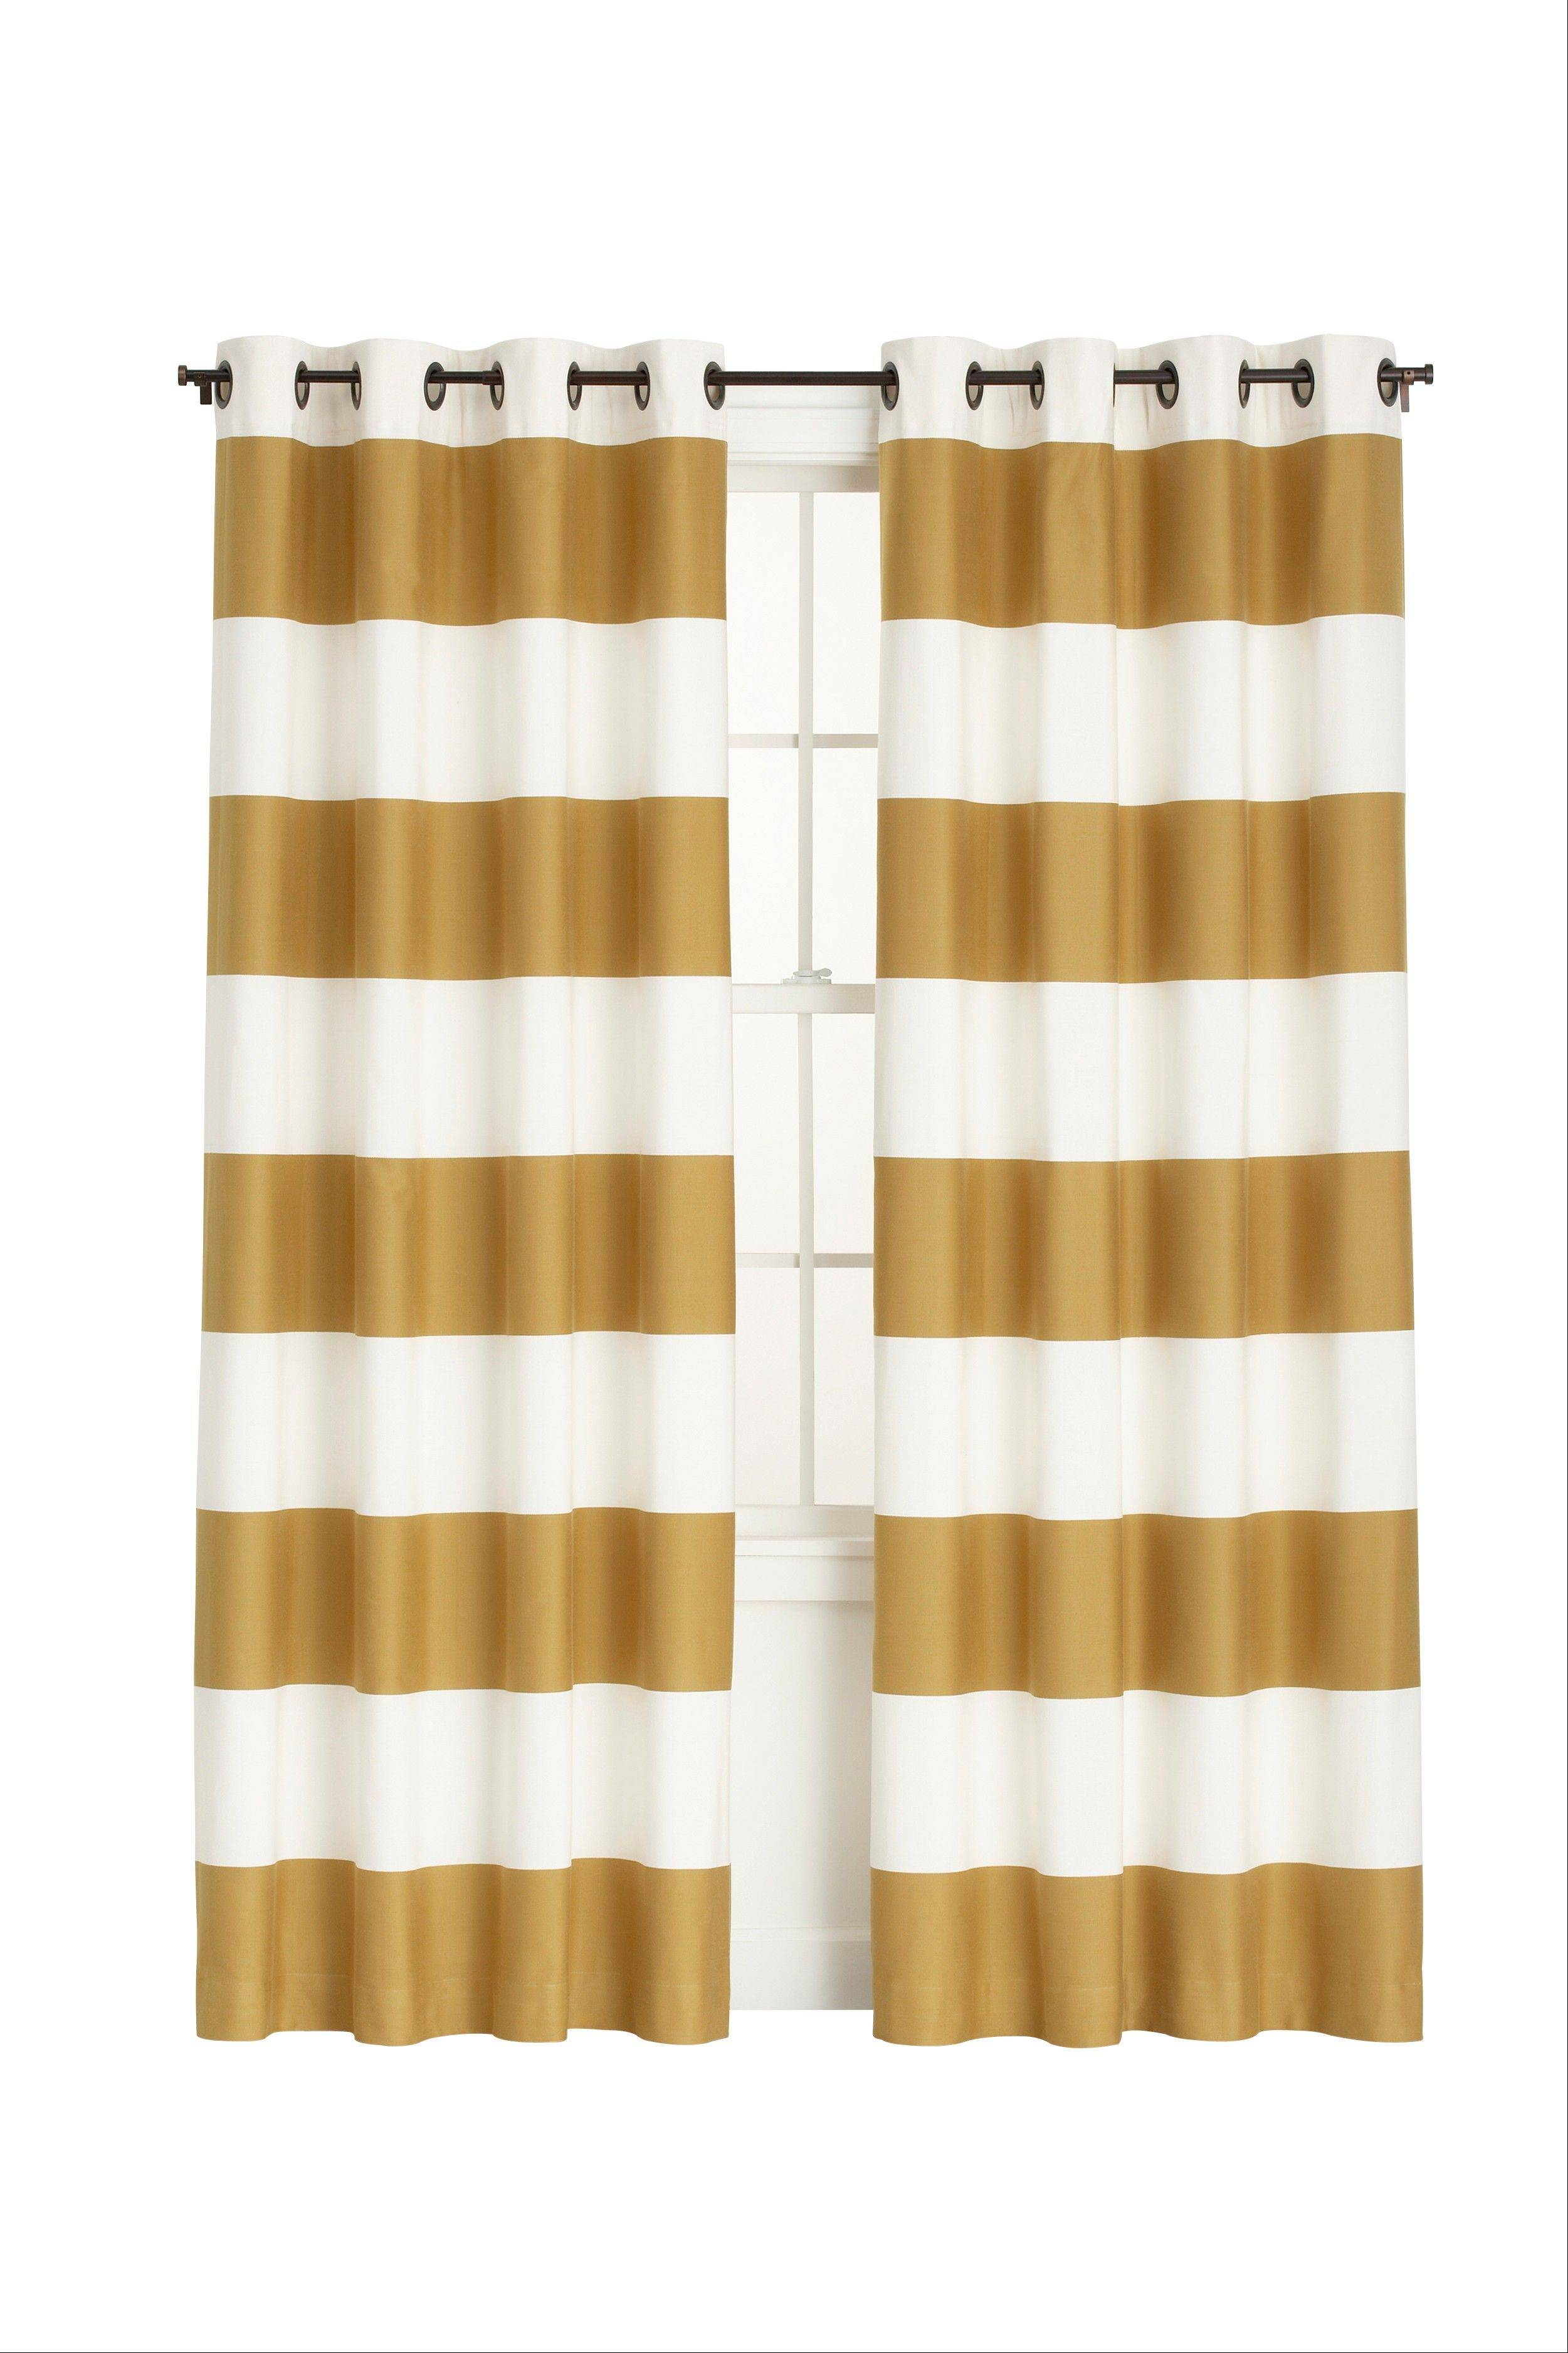 Bold ivory and gold stripe Aston curtains are shown. Available also in ivory and graphite, the curtains are in the top trend category for fall 2012.